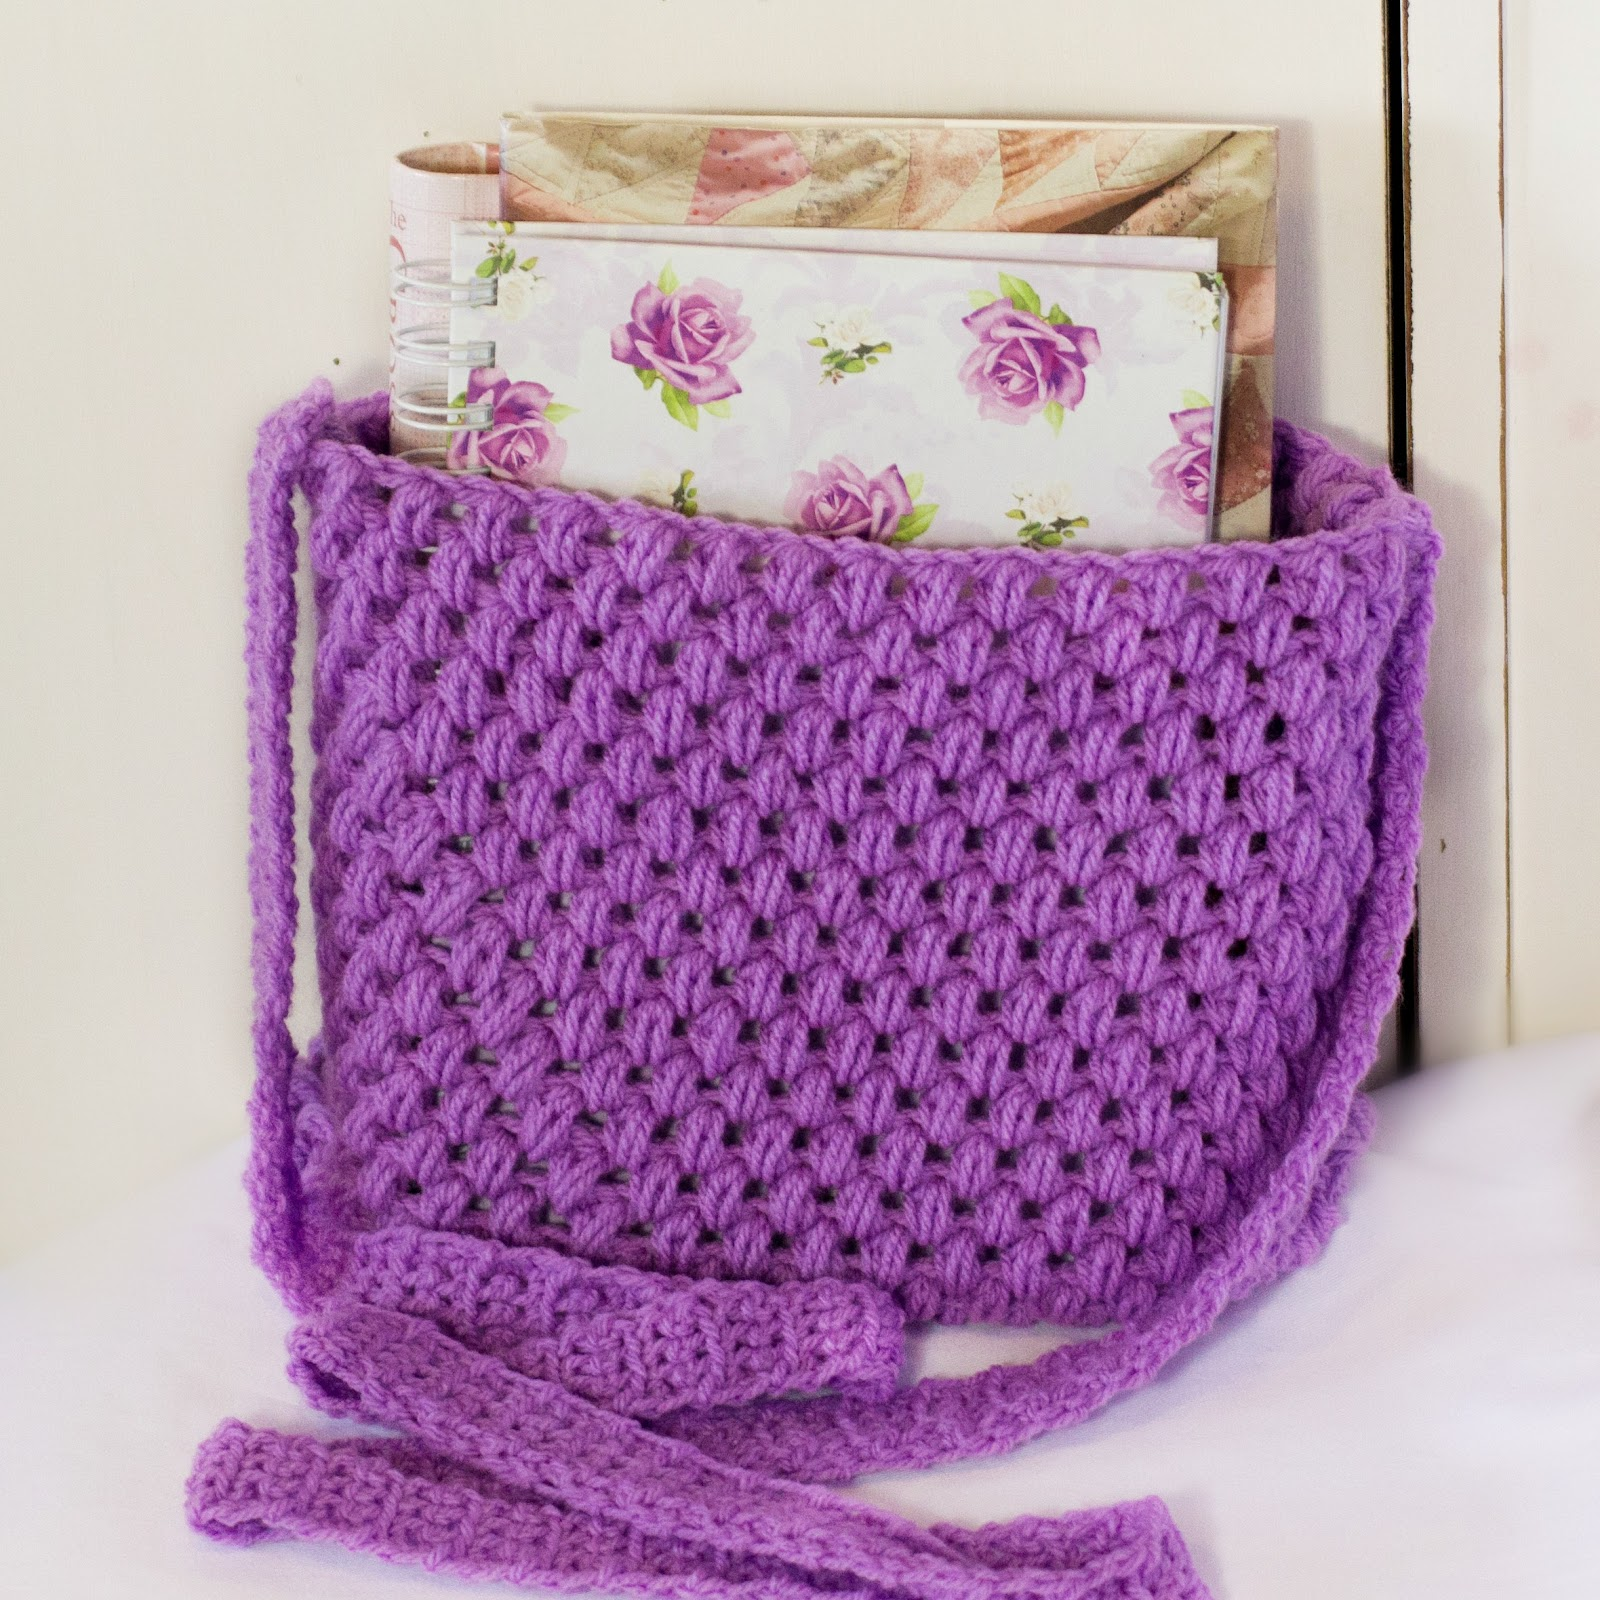 Crochet Backpack Purse : Hopeful Honey Craft, Crochet, Create: March 2012